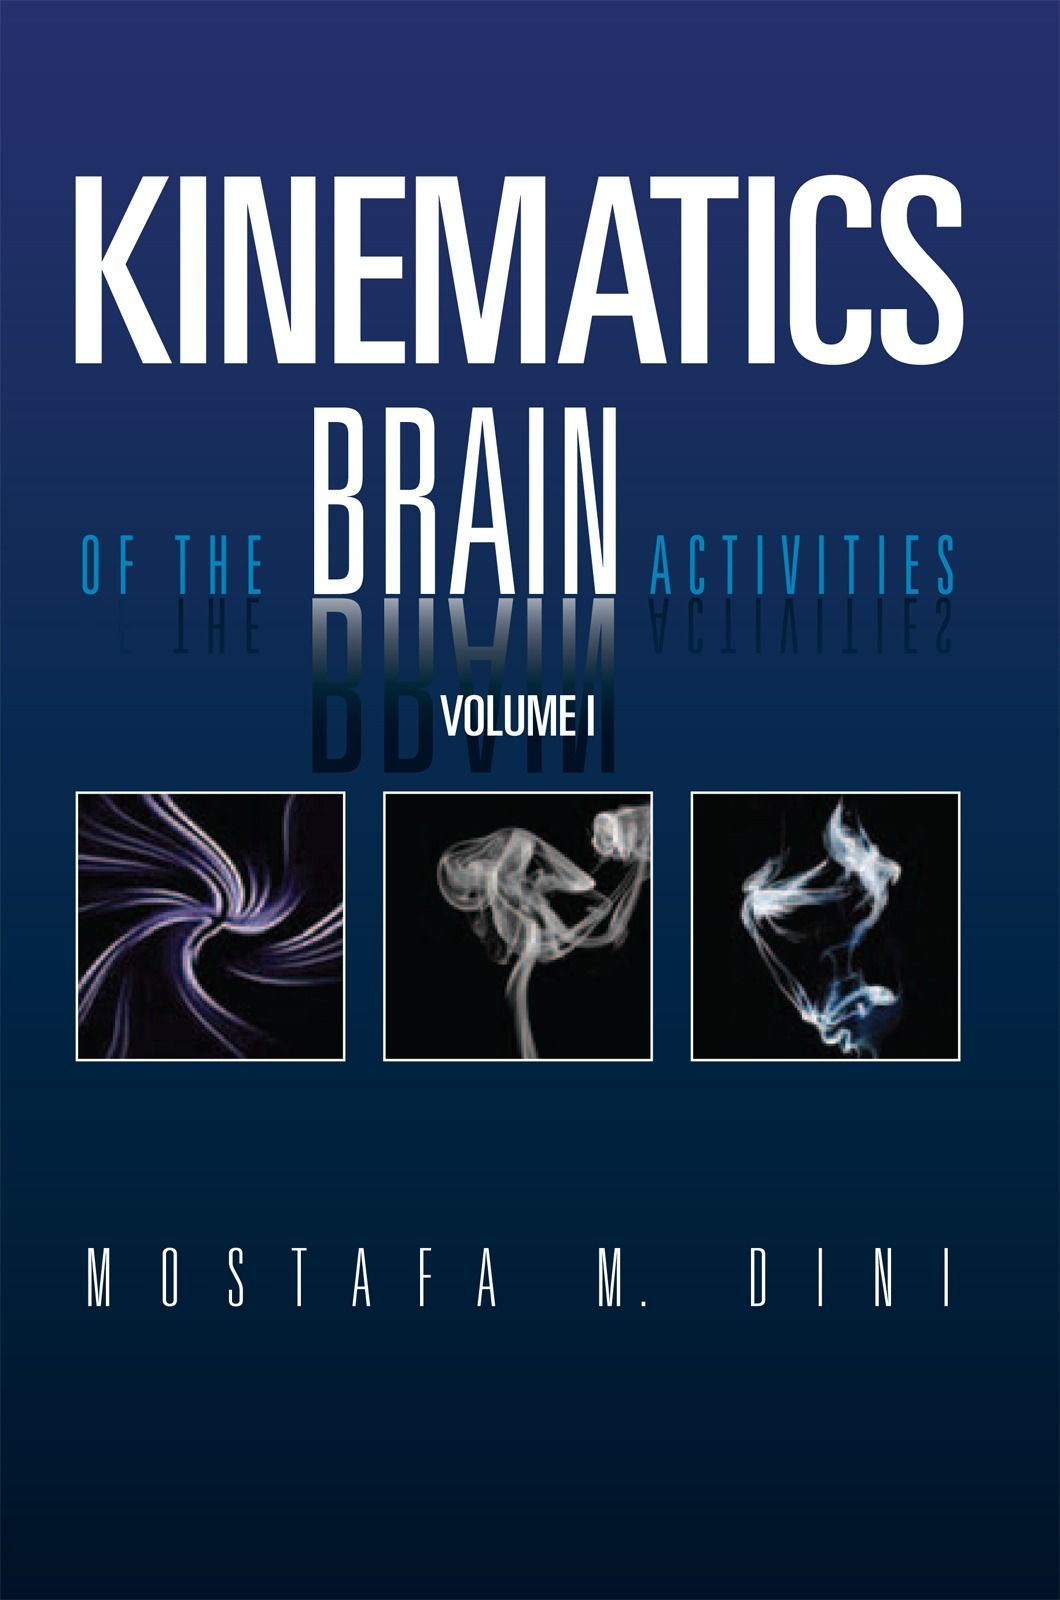 Kinematics Of The Brain Activities By: Mostafa M. Dini